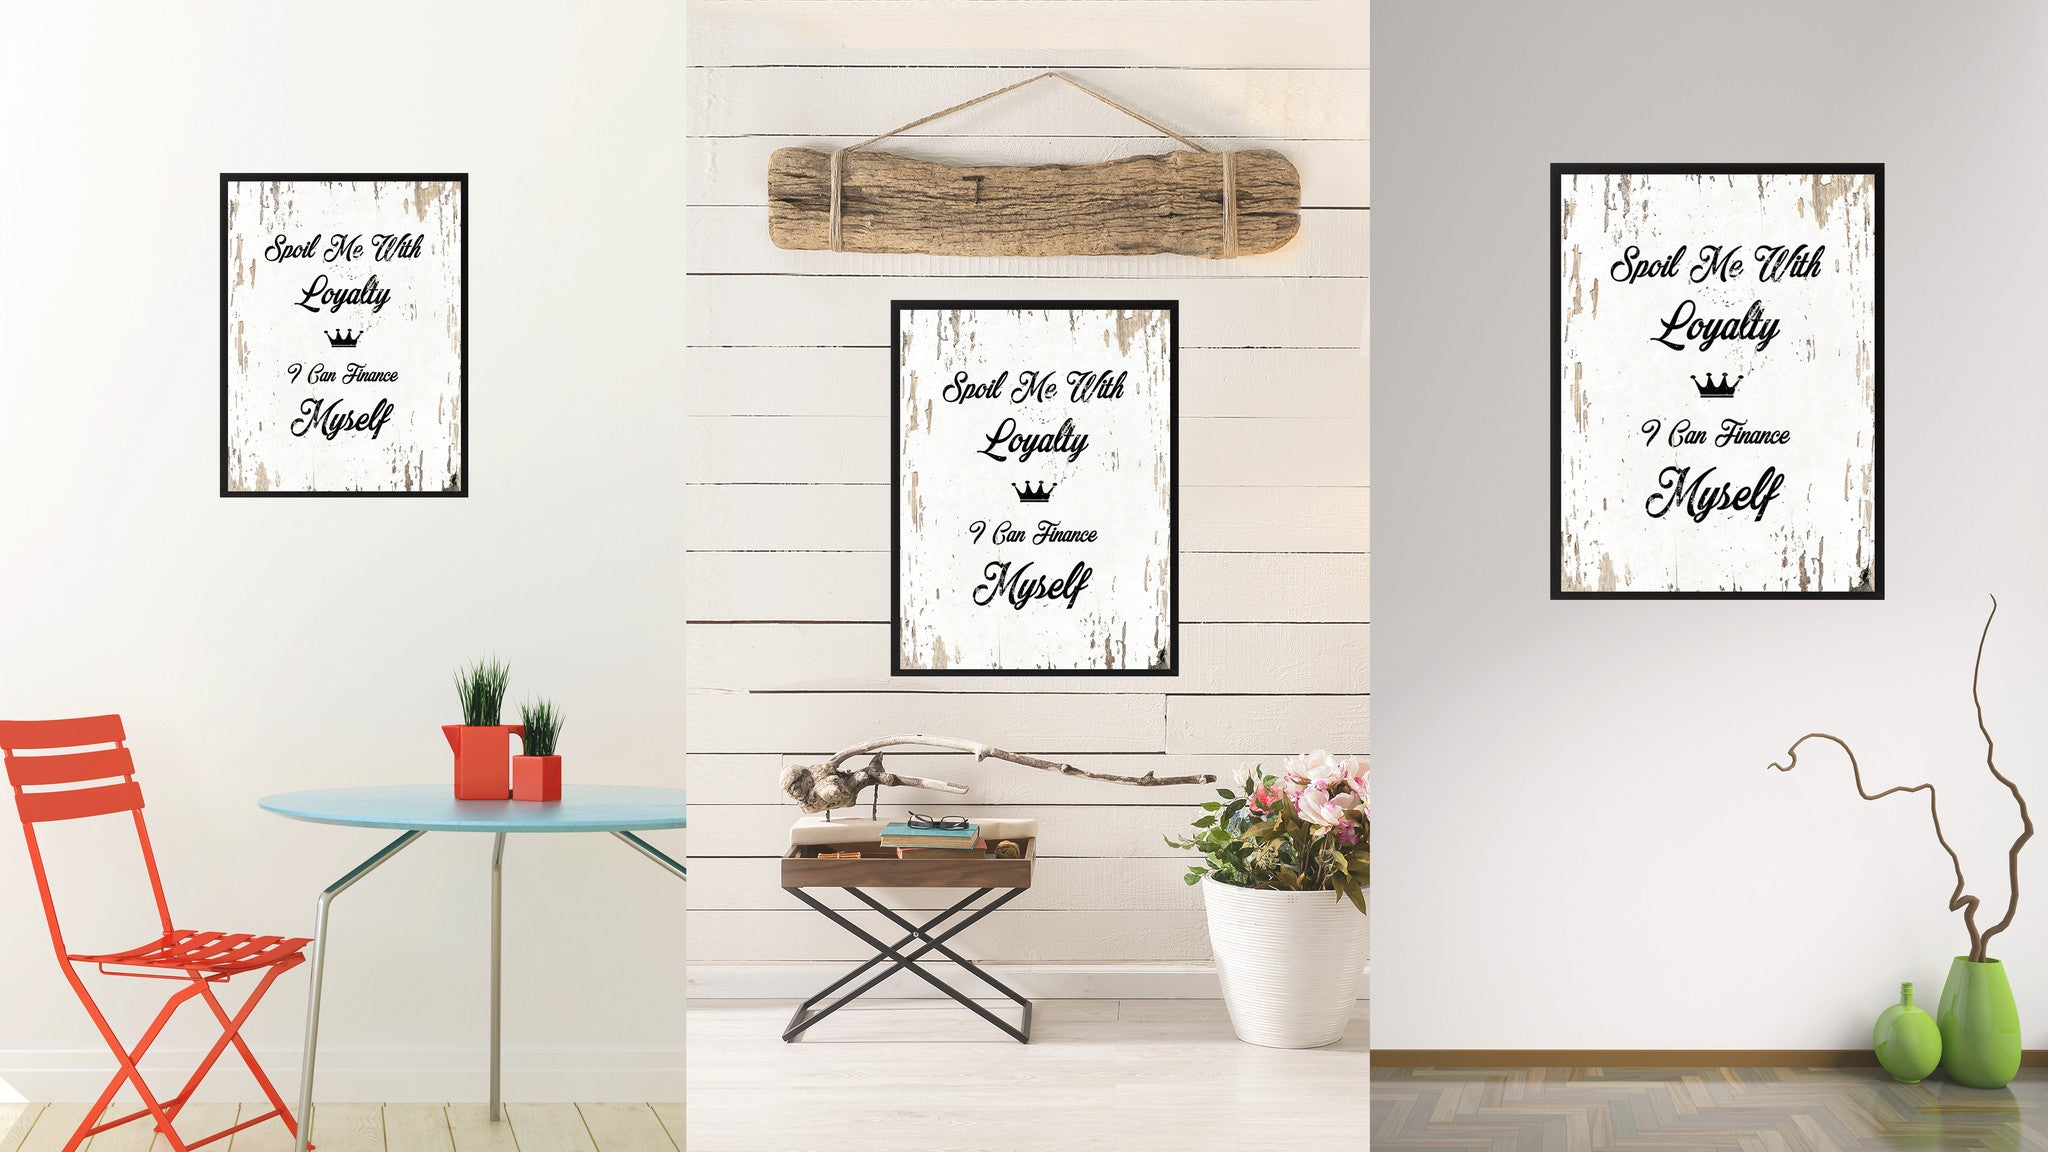 Spoil me with loyalty I can finance myself Motivation Quote Saying Gift Ideas Home Decor Wall Art